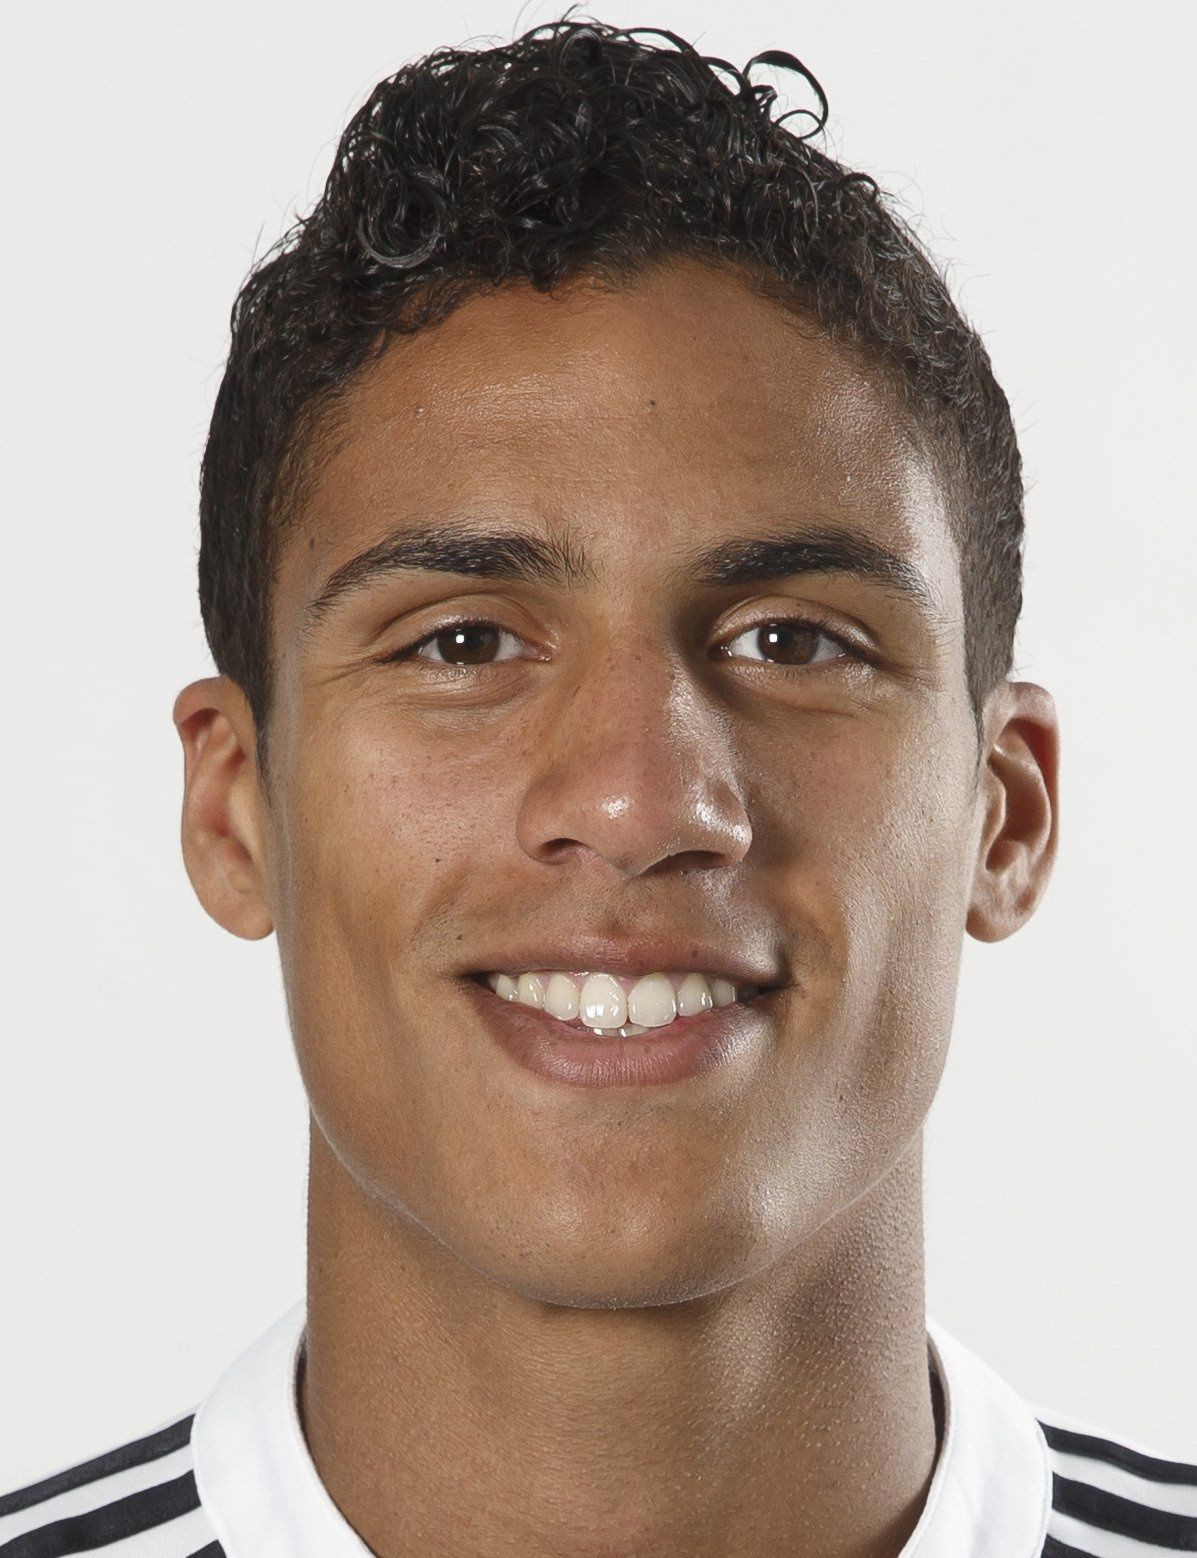 Bayern wants to bid 40m for Varane | soccer http://www